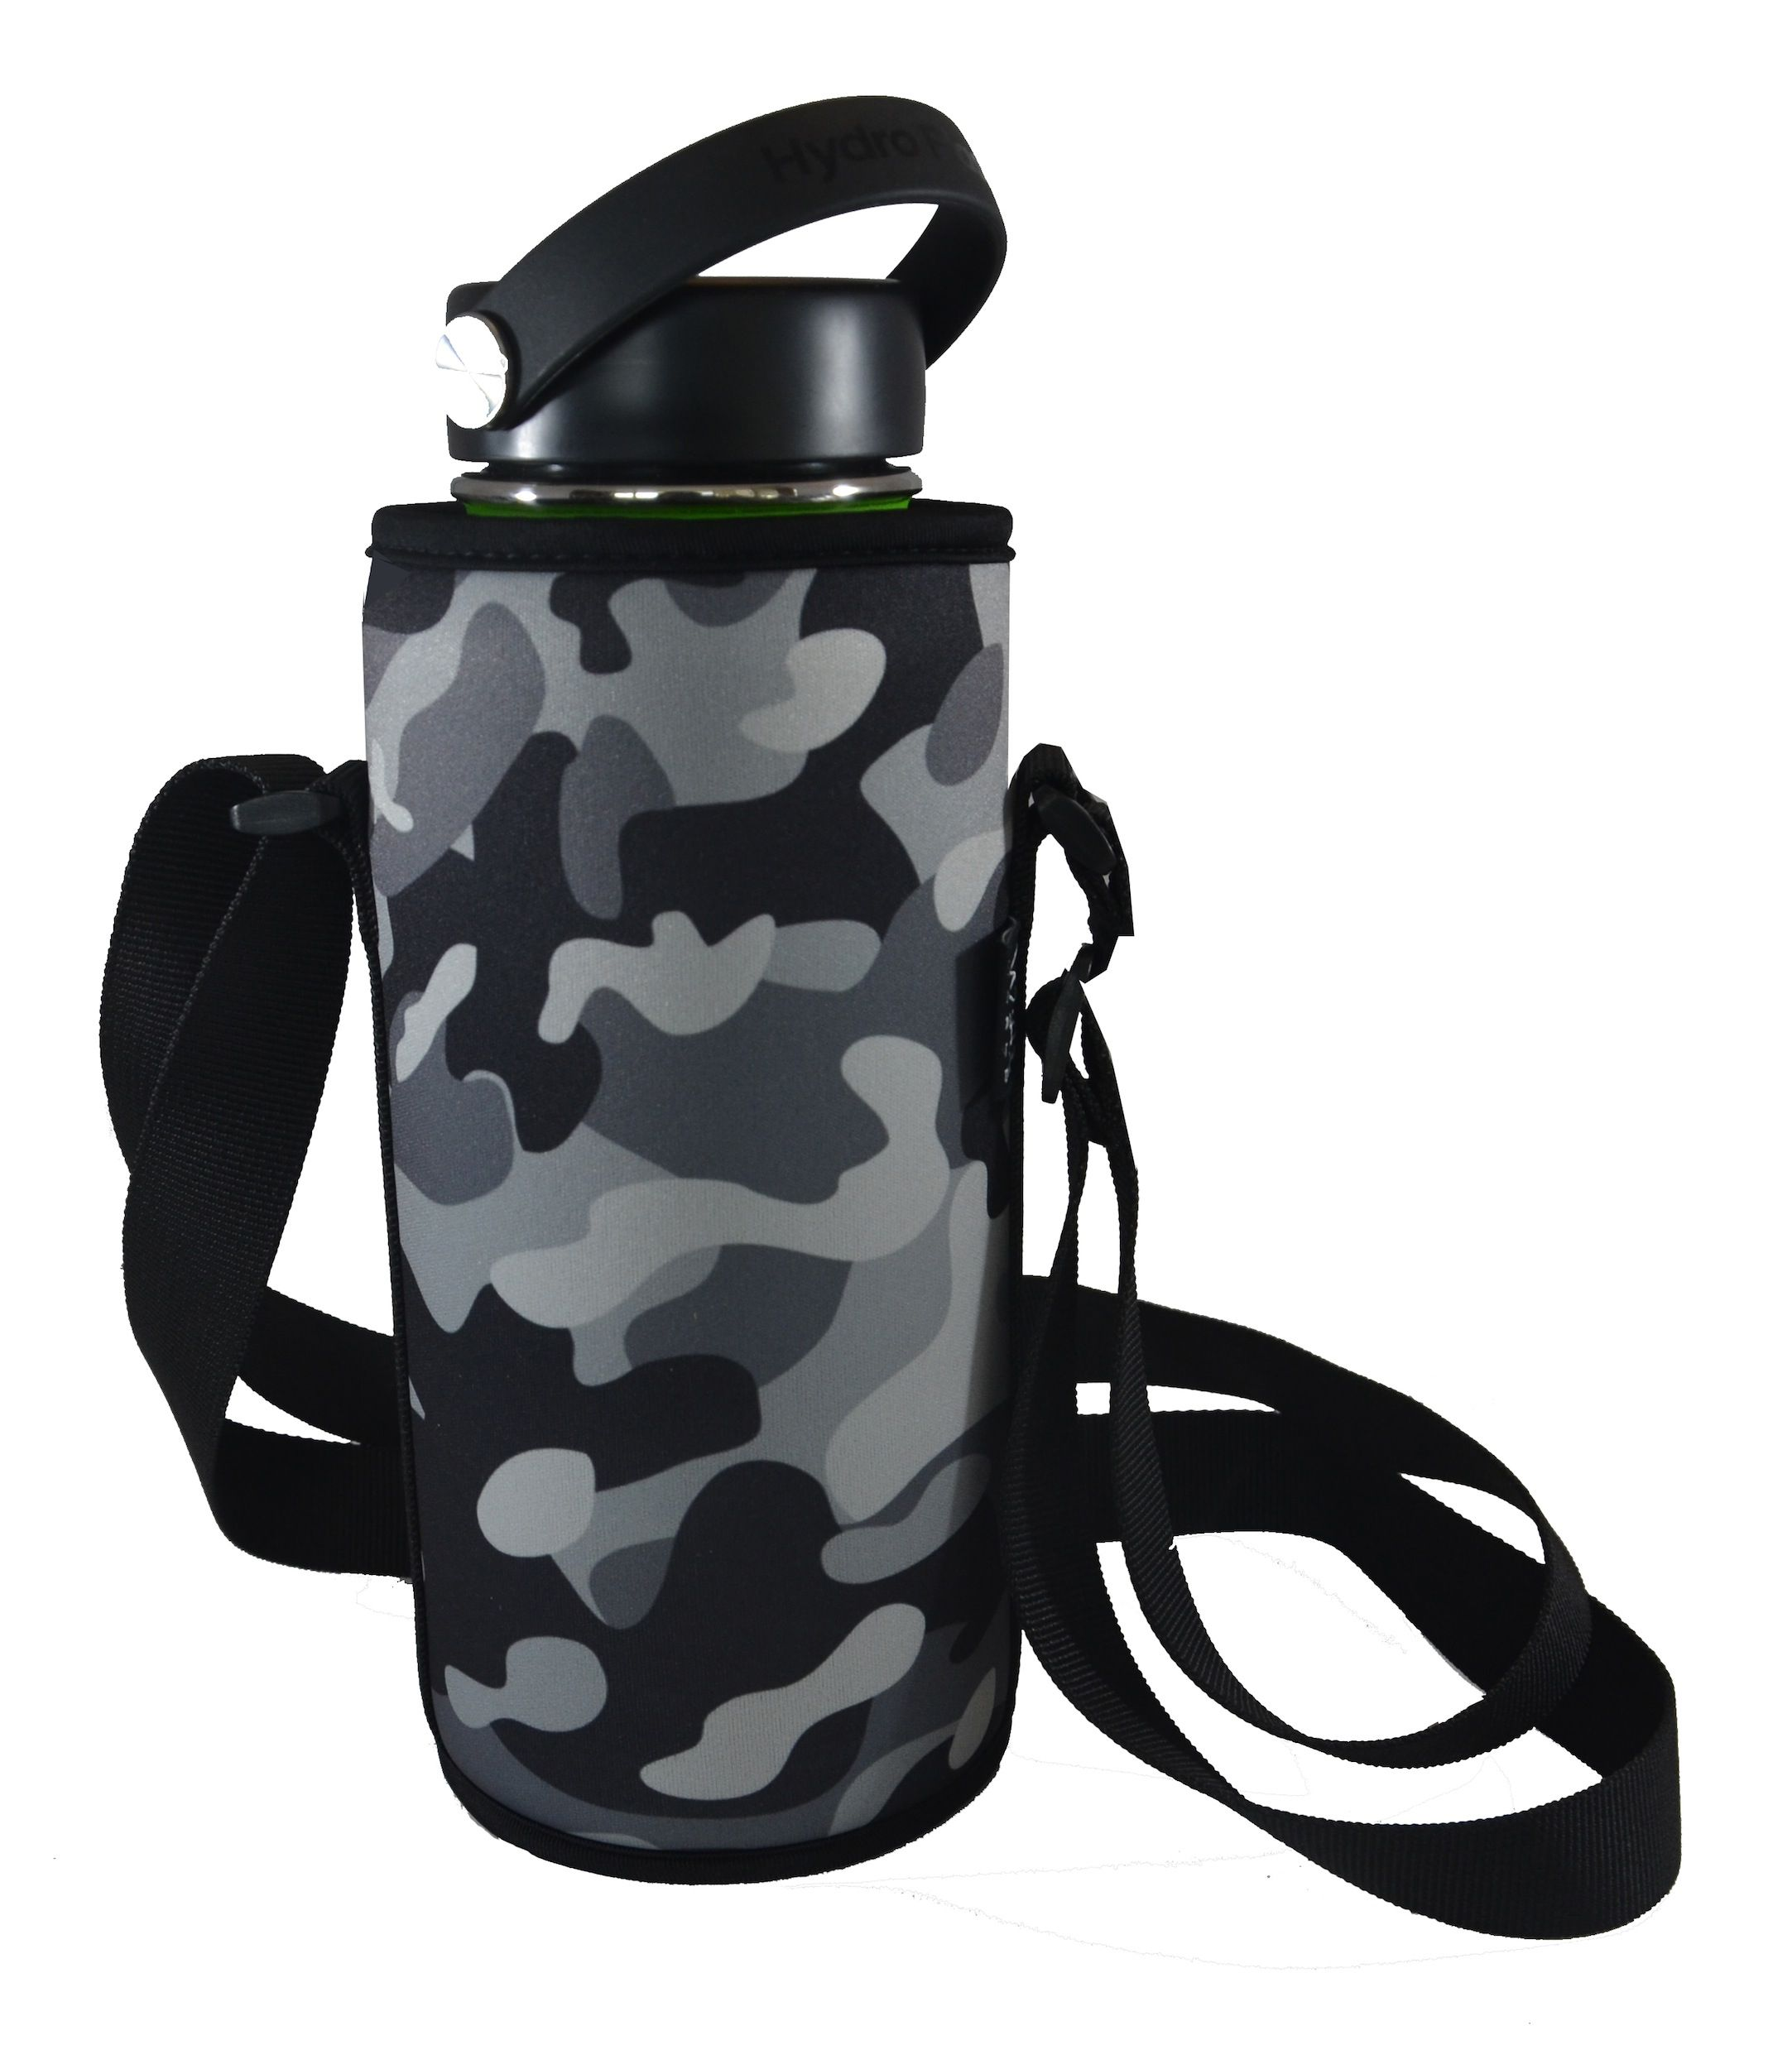 Don't forget your own water bottle while you walk the dog ...